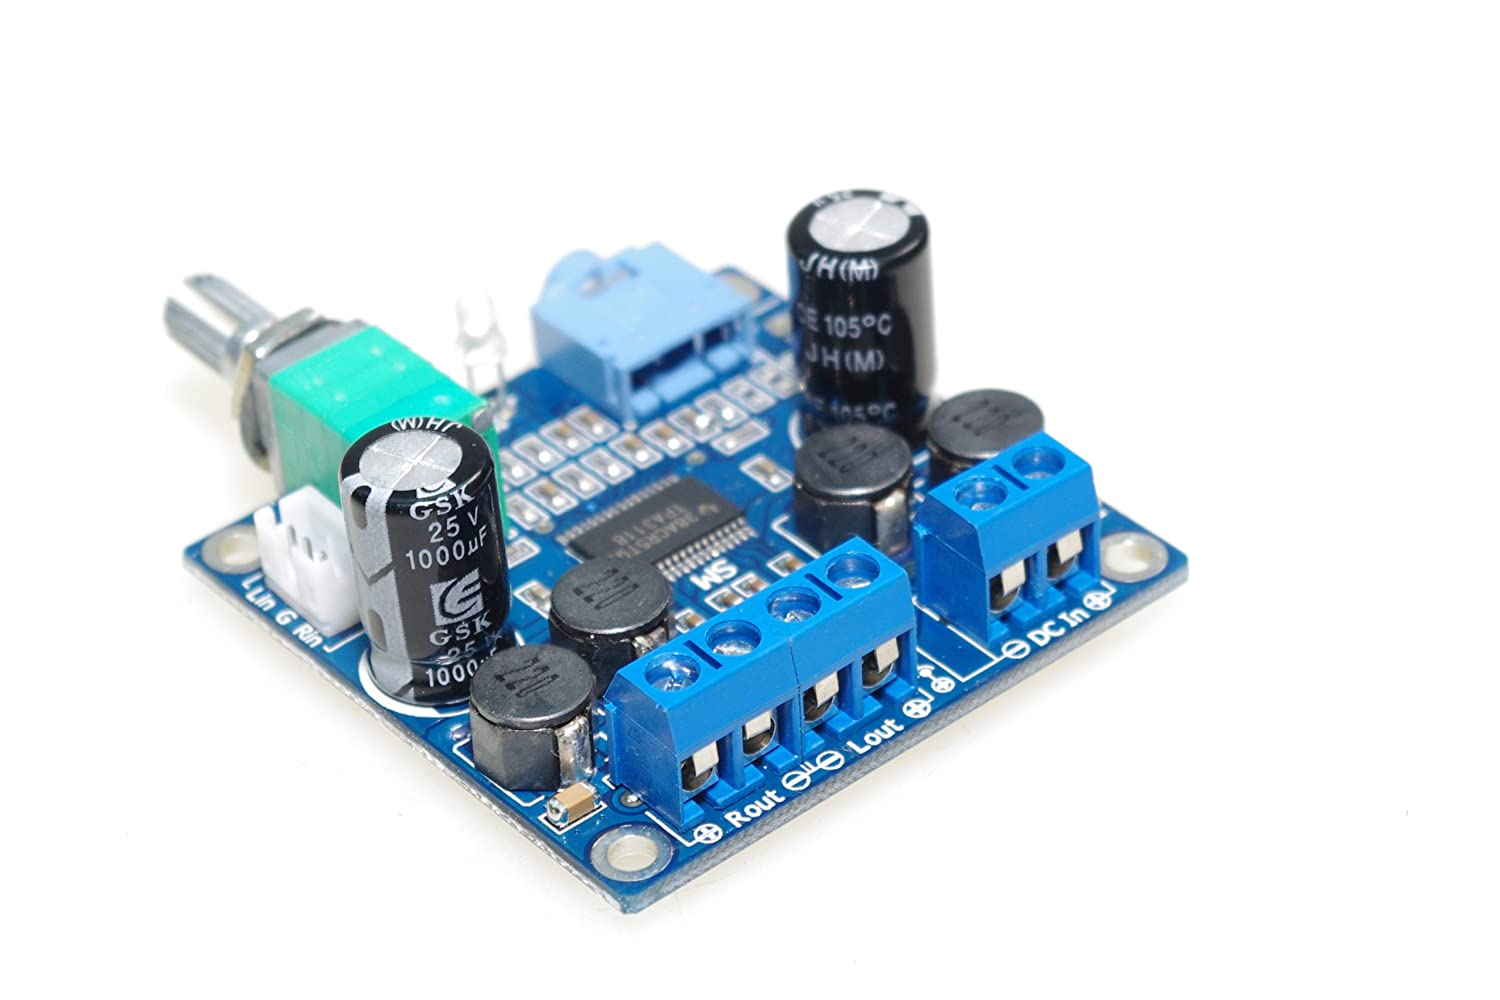 Smakn Tpa3118 Numeric 12v Power Amplifier Board Class D Circuit Tpa3116d2 Tpa3118d2 Subwoofer Finished With Switch Potentiometer Parallel Mono Musical Instruments